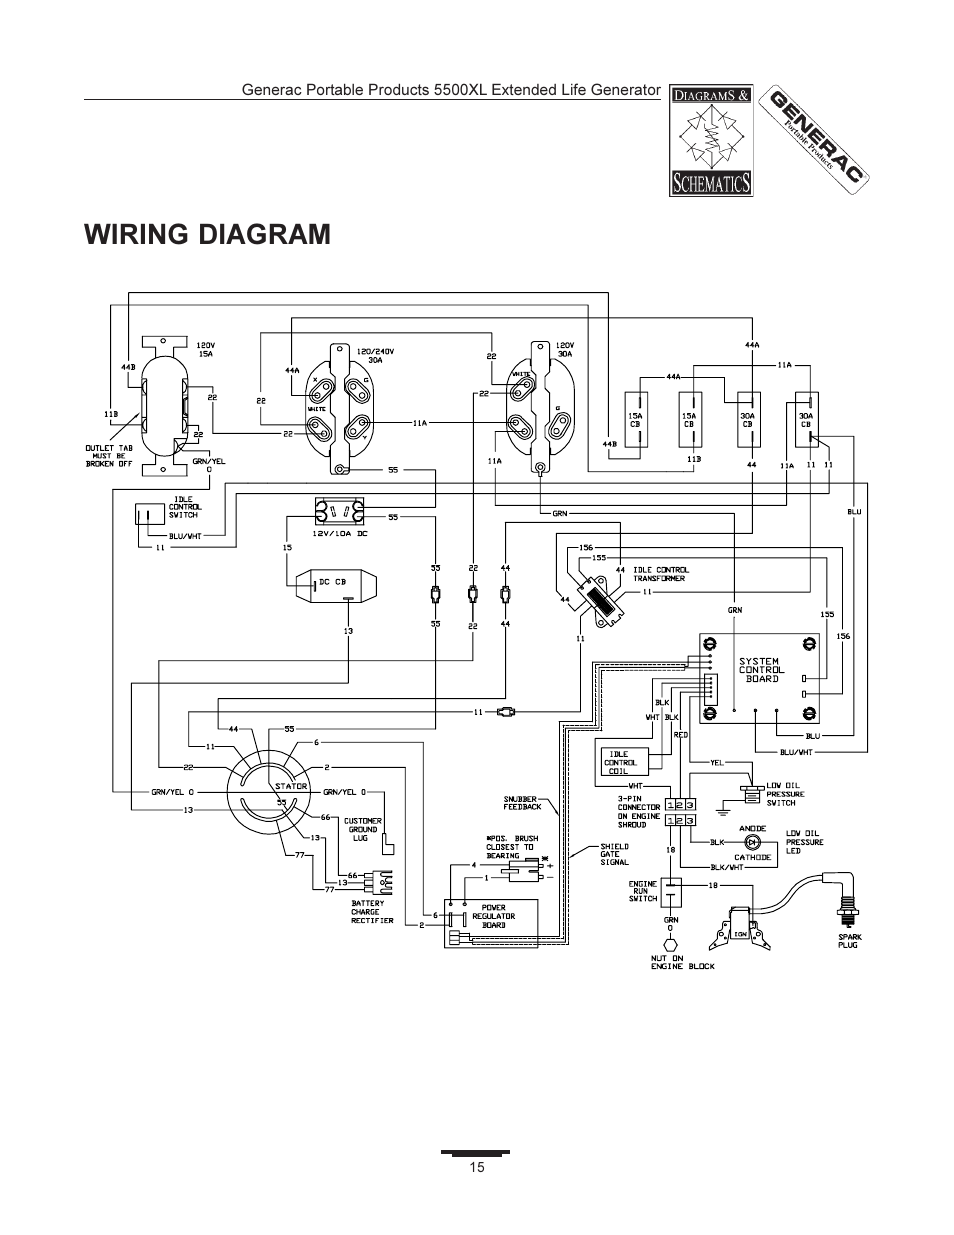 Generac Wiring Manuals. generac manual transfer switch wiring diagram  download. wiring diagram generac svp5000 97193 user manual page. generac  wiring diagram wiring diagram. gallery of generac 6333 wiring diagram  sample. generac gp7500e2002-acura-tl-radio.info